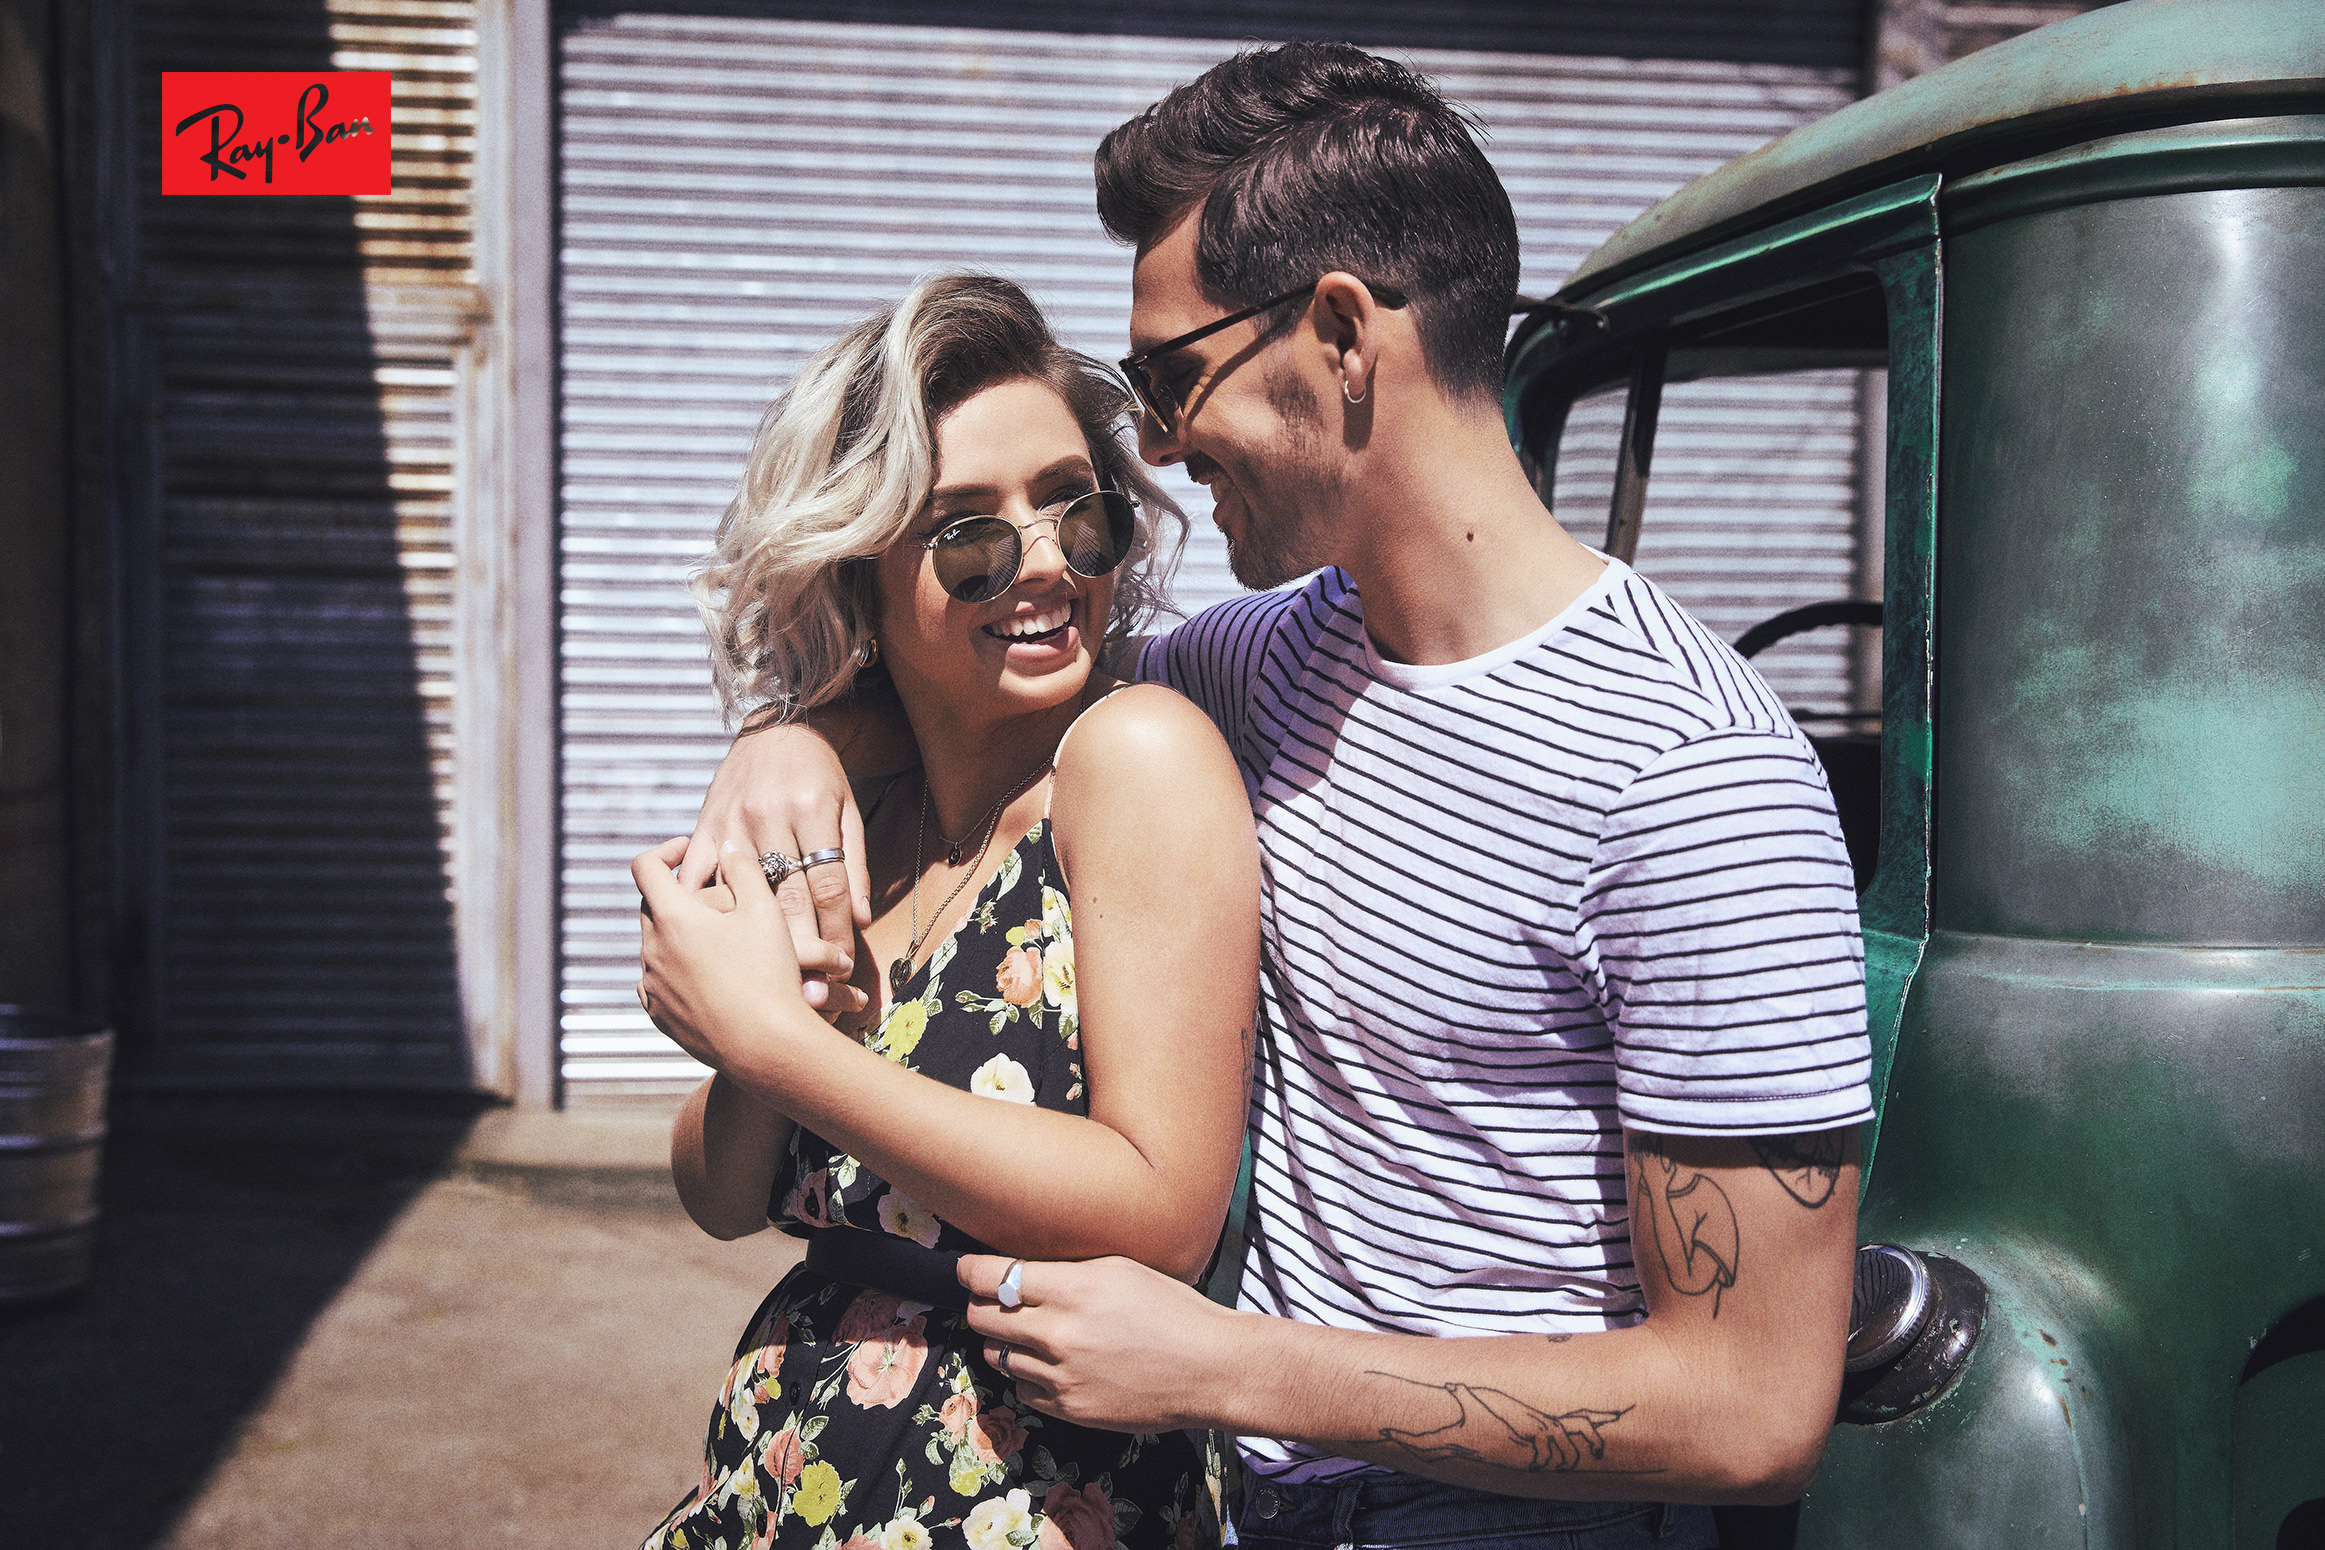 rayban-shoot-photoshoot-sunglasses-advertising-photographer-london-charlotte-hole-blogger-2Z5A1045-f1.jpg